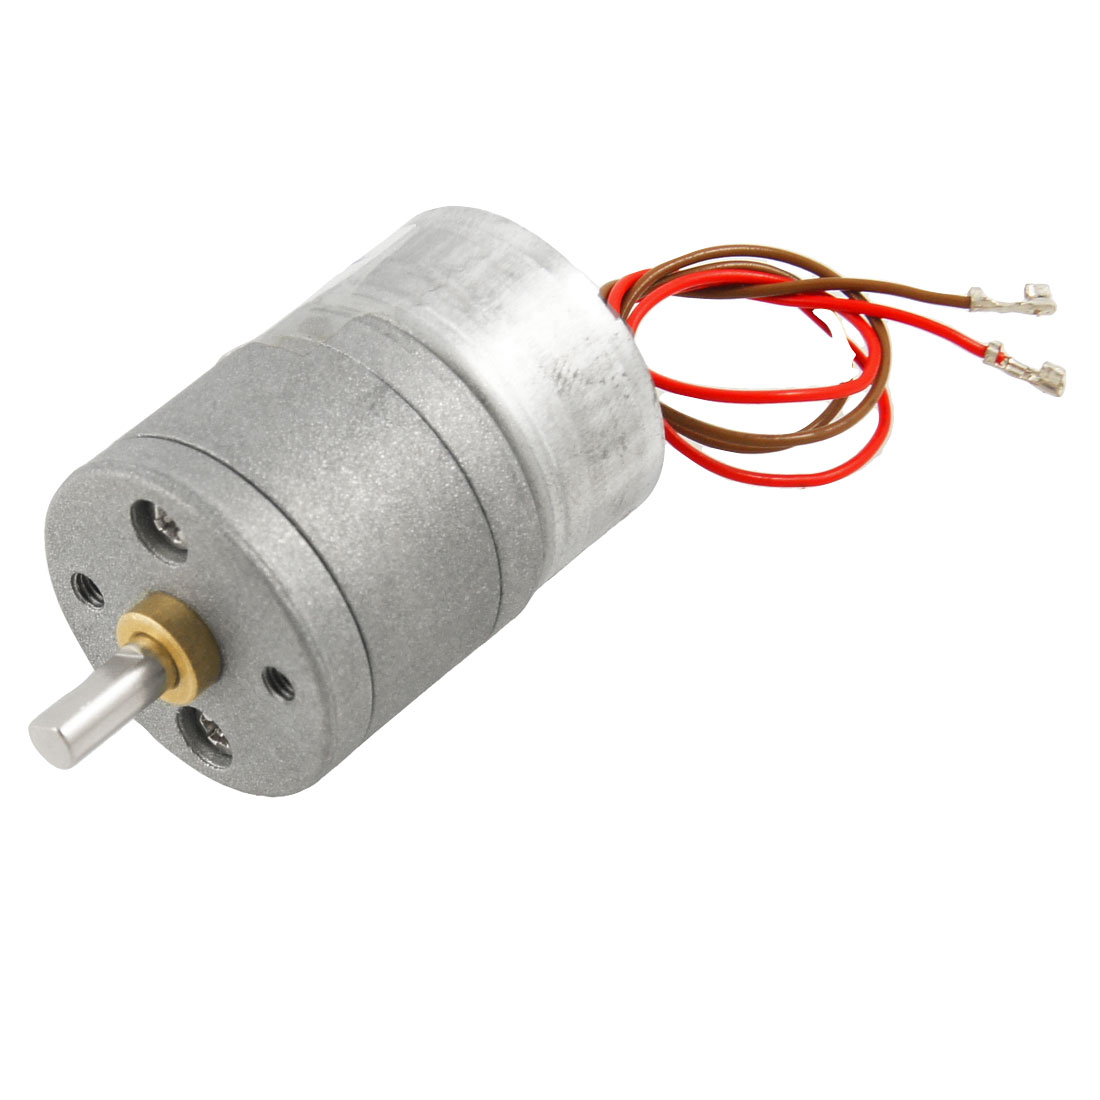 70 RPM 6V 45mA DC 4mm Dia Shaft Magnetic Gear Box Motor w 2 Wires